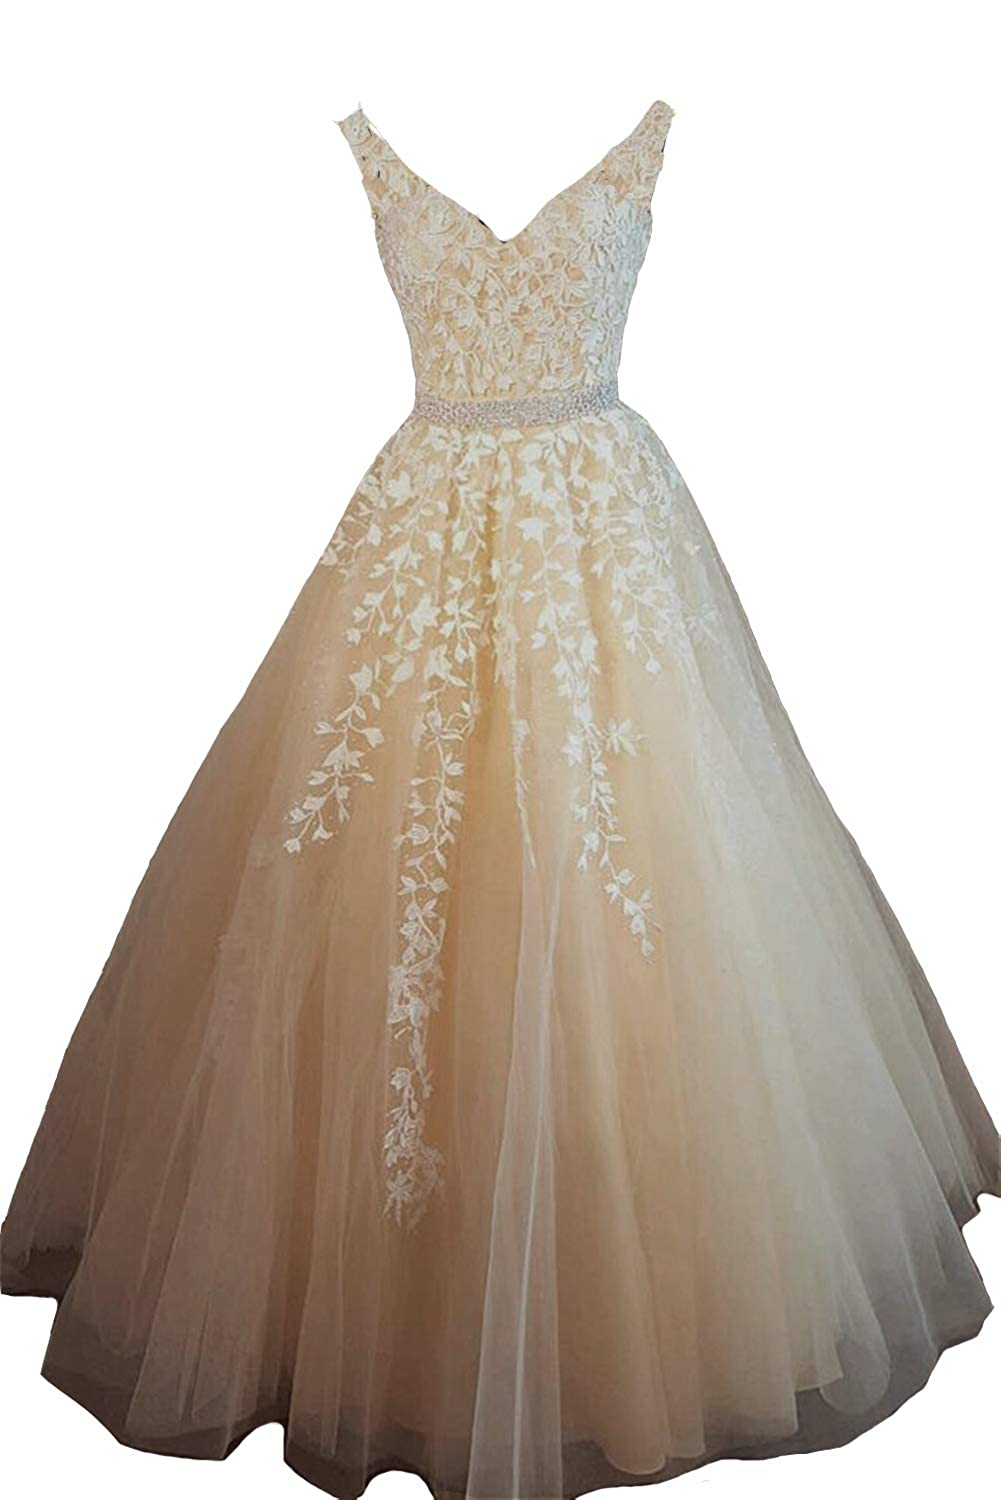 White Champagne Lemai Women V Neck Beaded Lace Appliques Tulle Long Formal Evening Prom Dresses